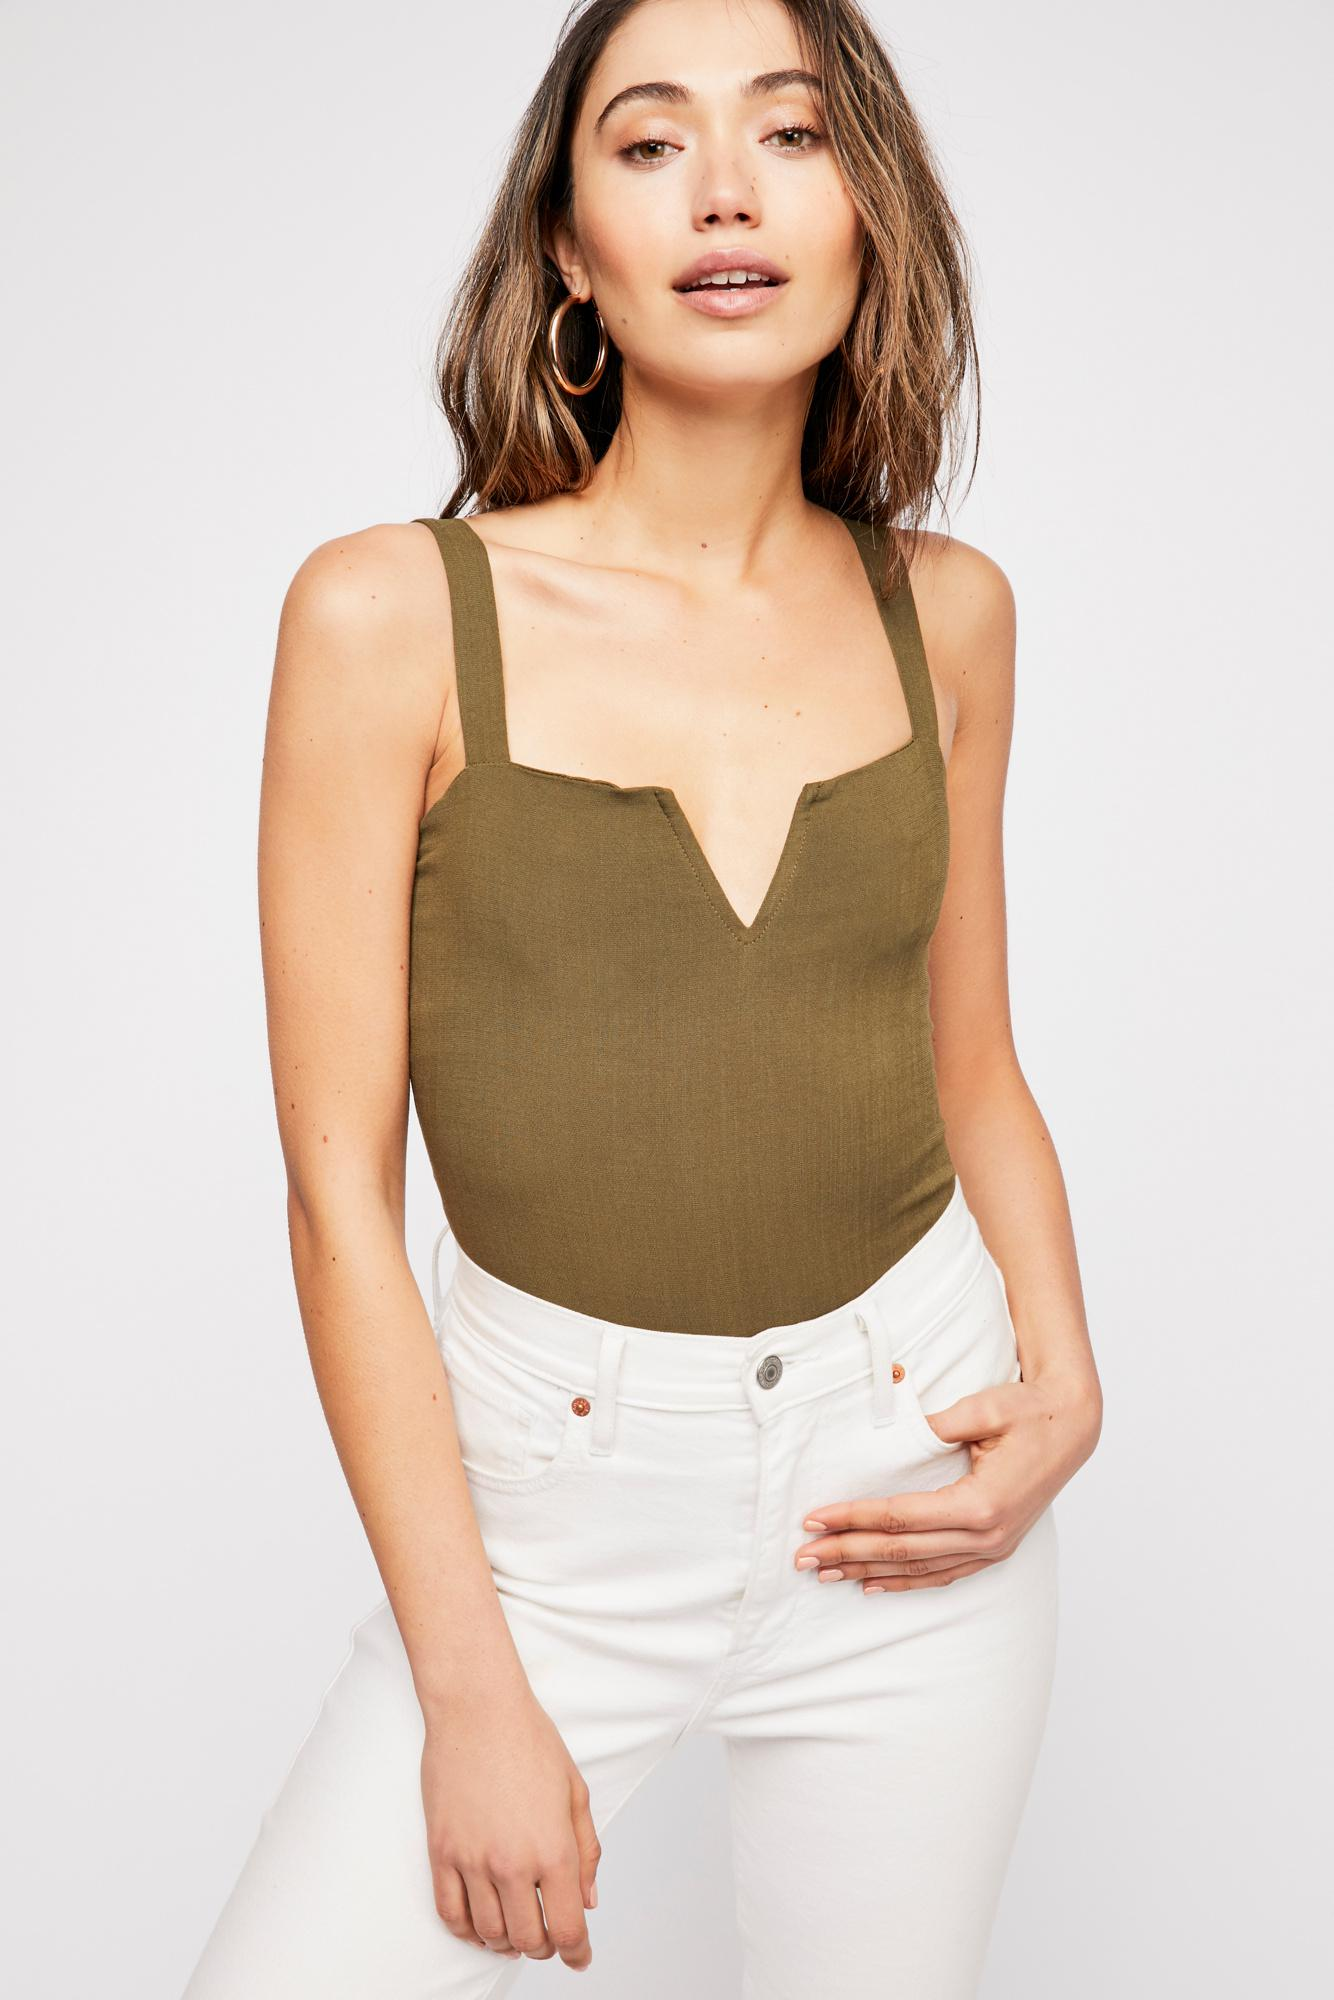 ed367fce2c Free People - Green Pippa V-wire Bodysuit By Intimately - Lyst. View  fullscreen